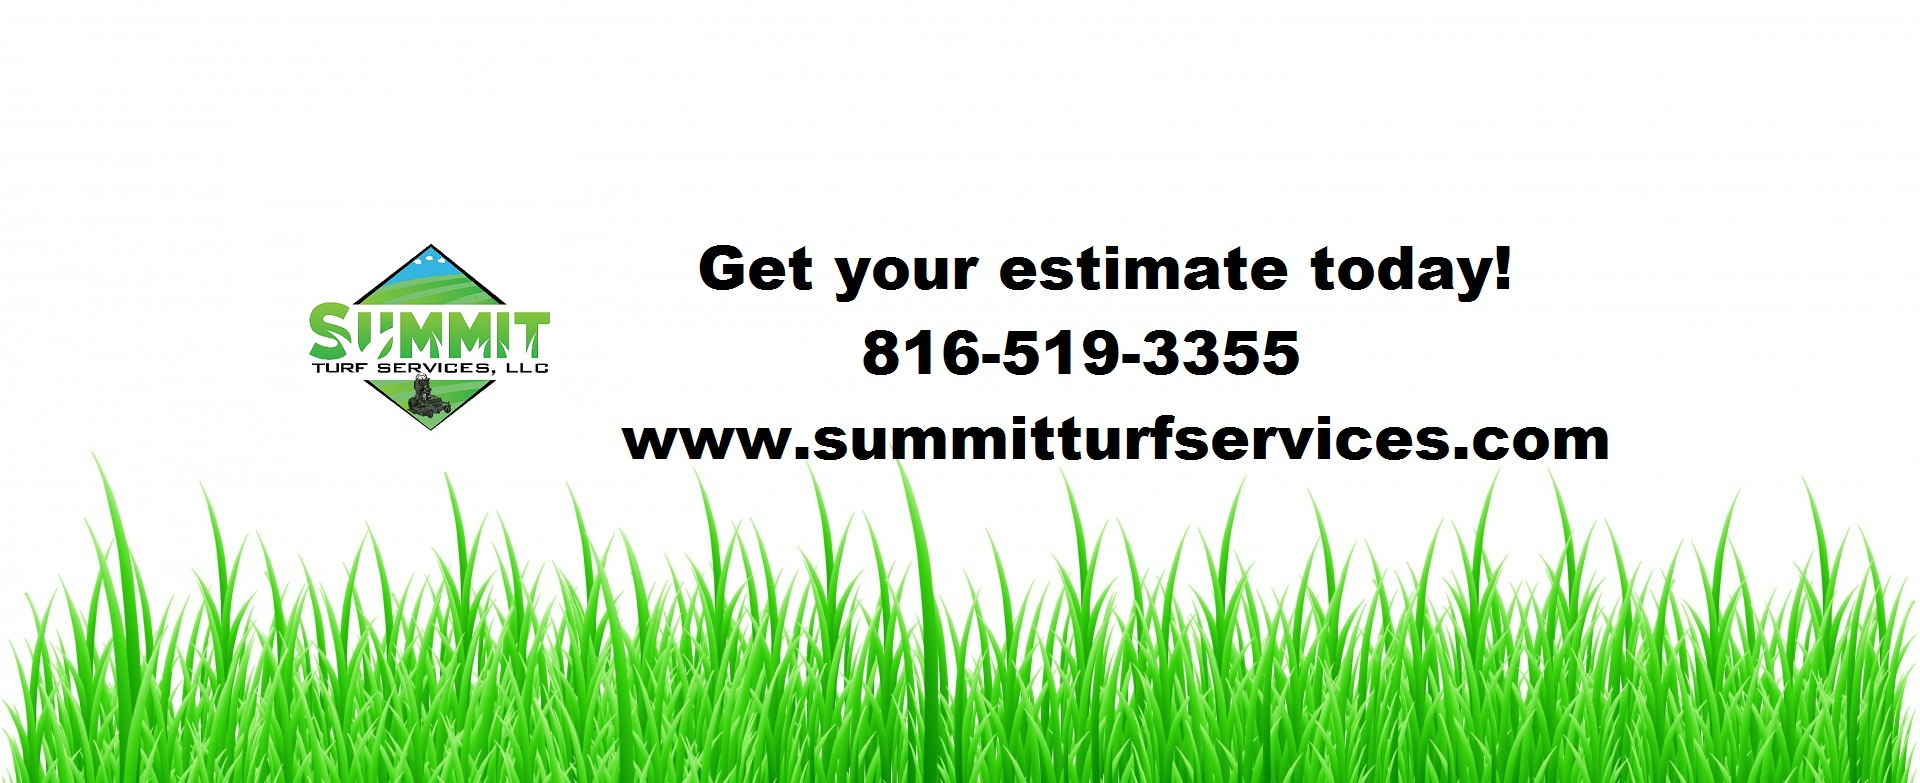 Summit Turf Services LLC